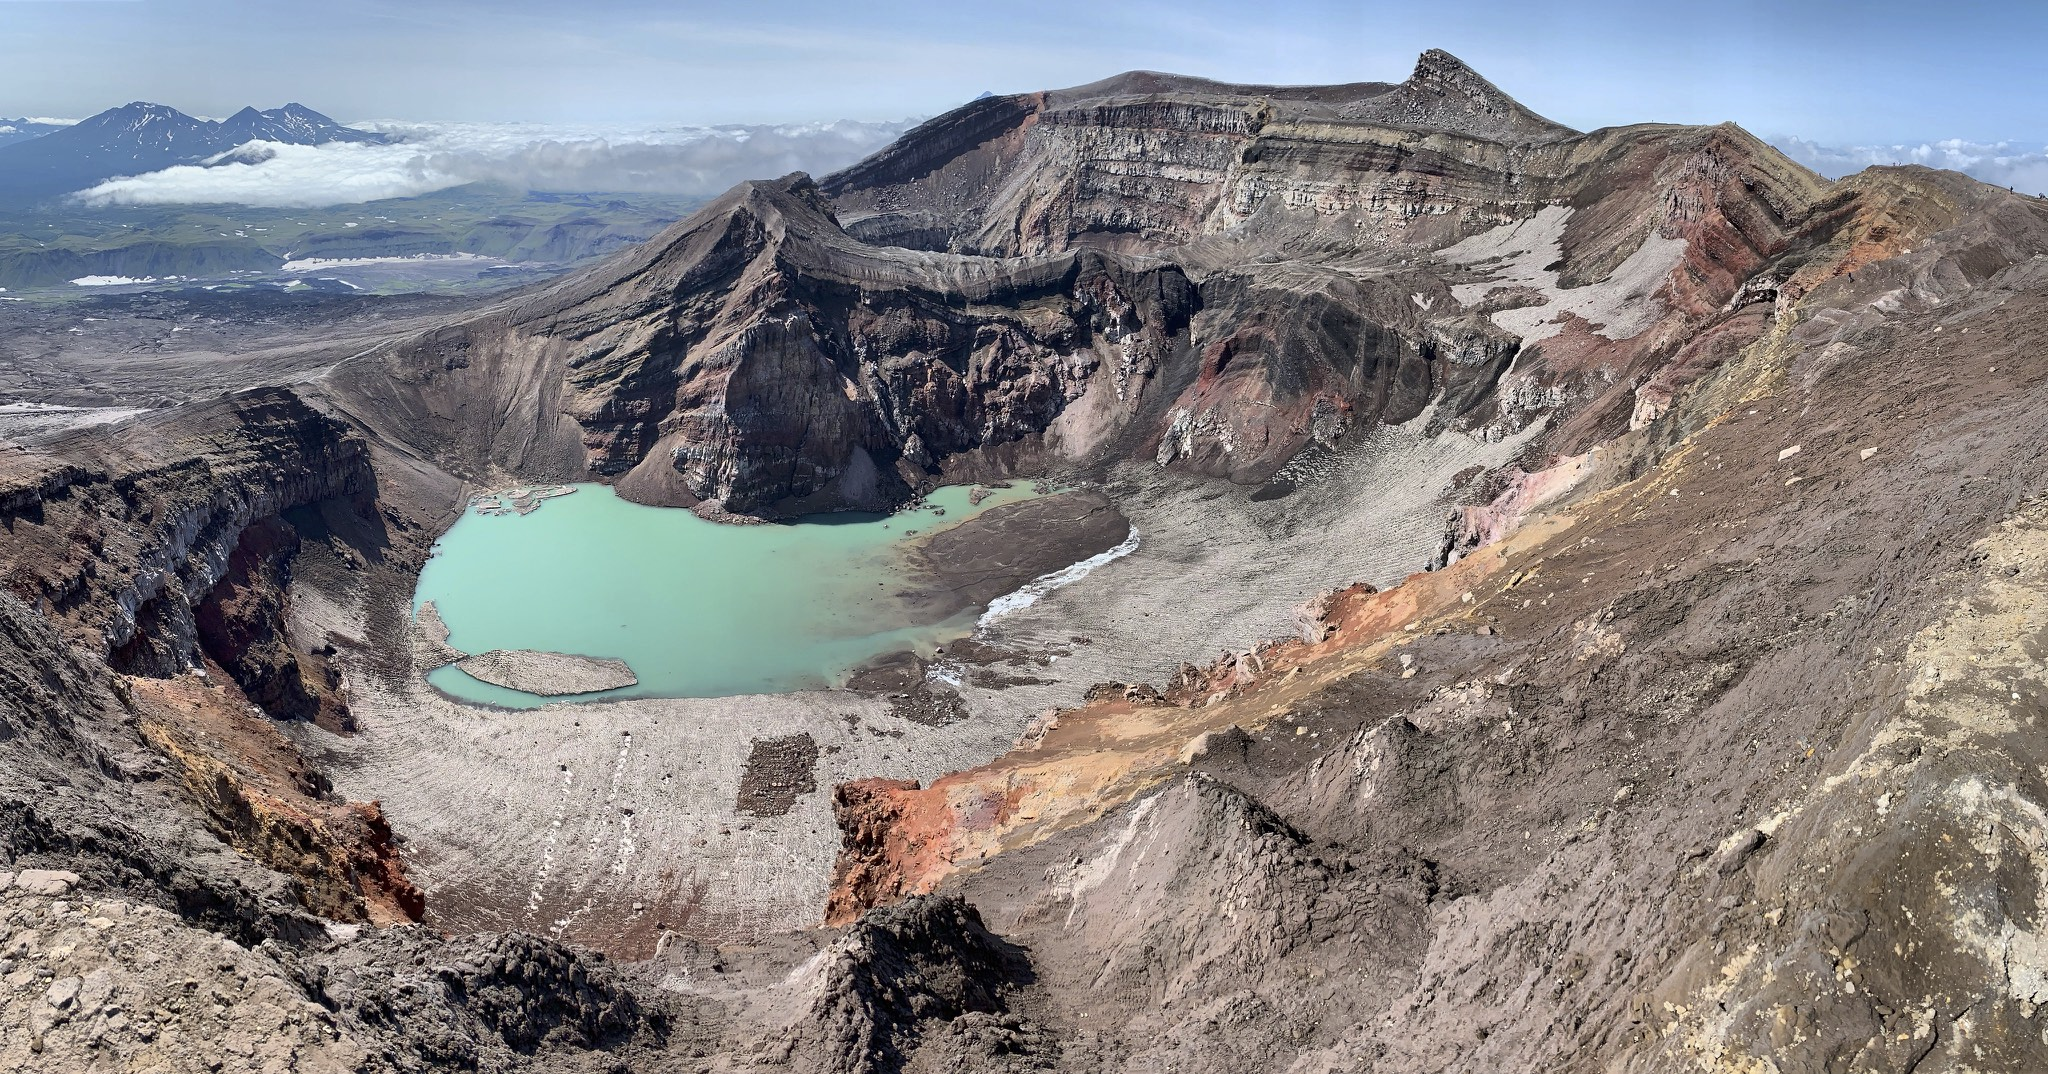 The main crater with a beautiful lake inside. The Gorely Volcano had 9 explosive eruptions in the past. Next to this lake crater is the eruptive crater with an active gas vent. The top of the mountain is the prominent fin in the distance.